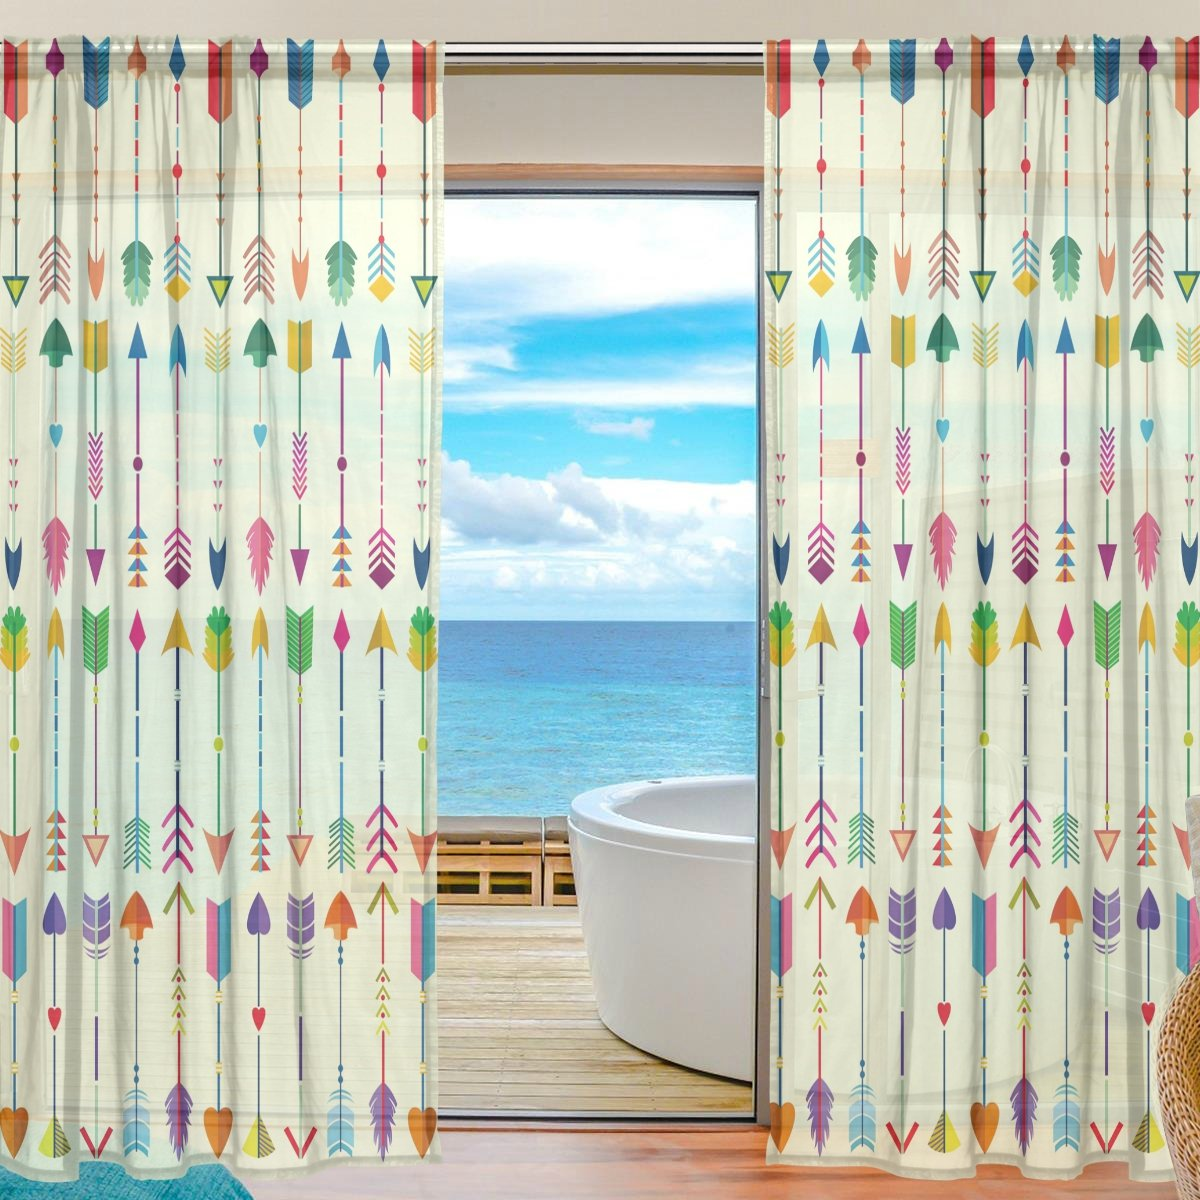 SEULIFE Window Sheer Curtain, Tribal Ethnic Feathers Arrow Pattern Voile Curtain Drapes for Door Kitchen Living Room Bedroom 55x78 inches 2 Panels g3064768p112c126s167